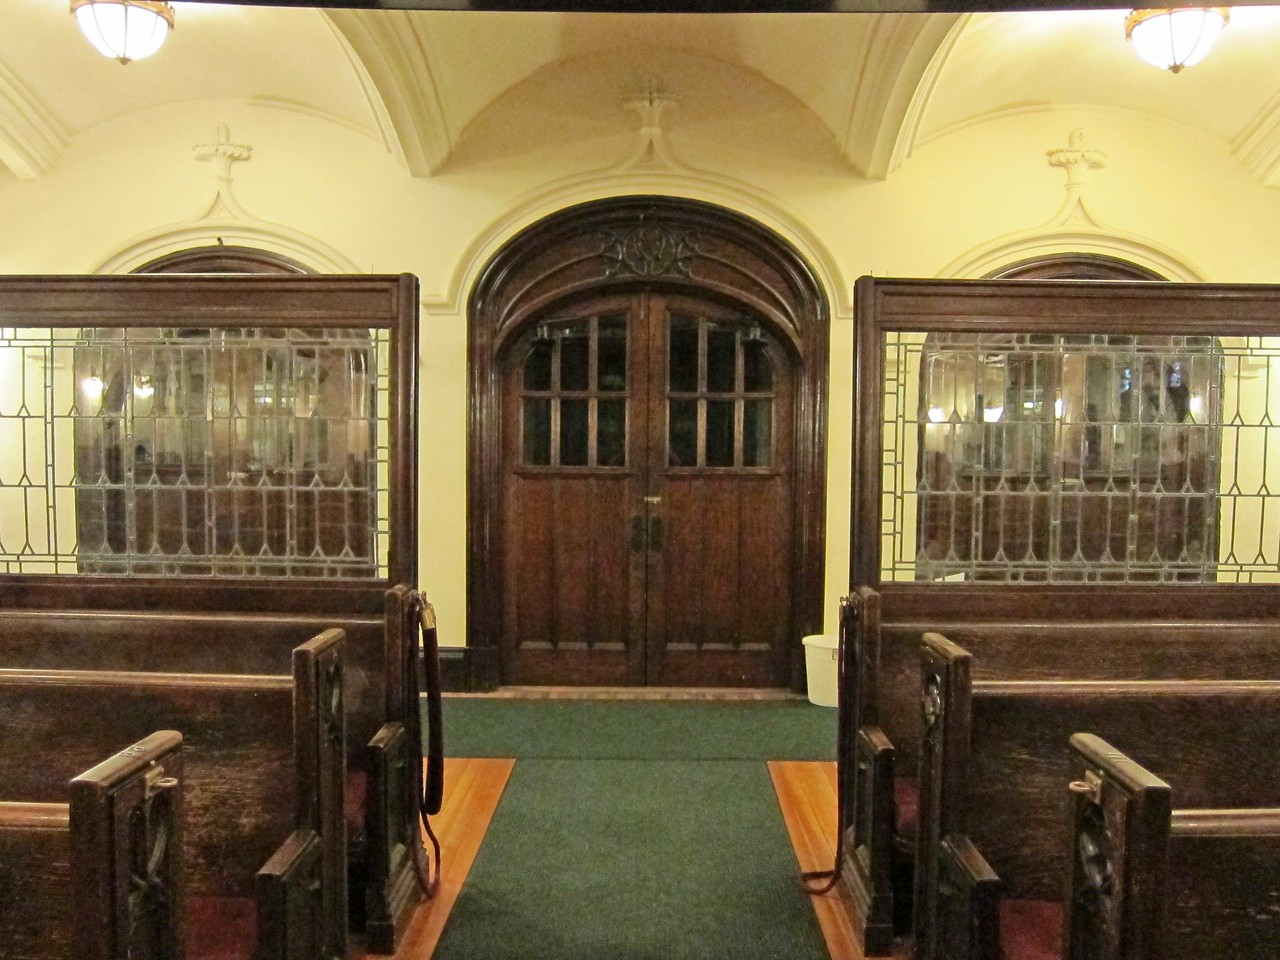 Broadway Presbyterian Church_2013-10-04_4330_3 doors leading to narthex seen from center aisle